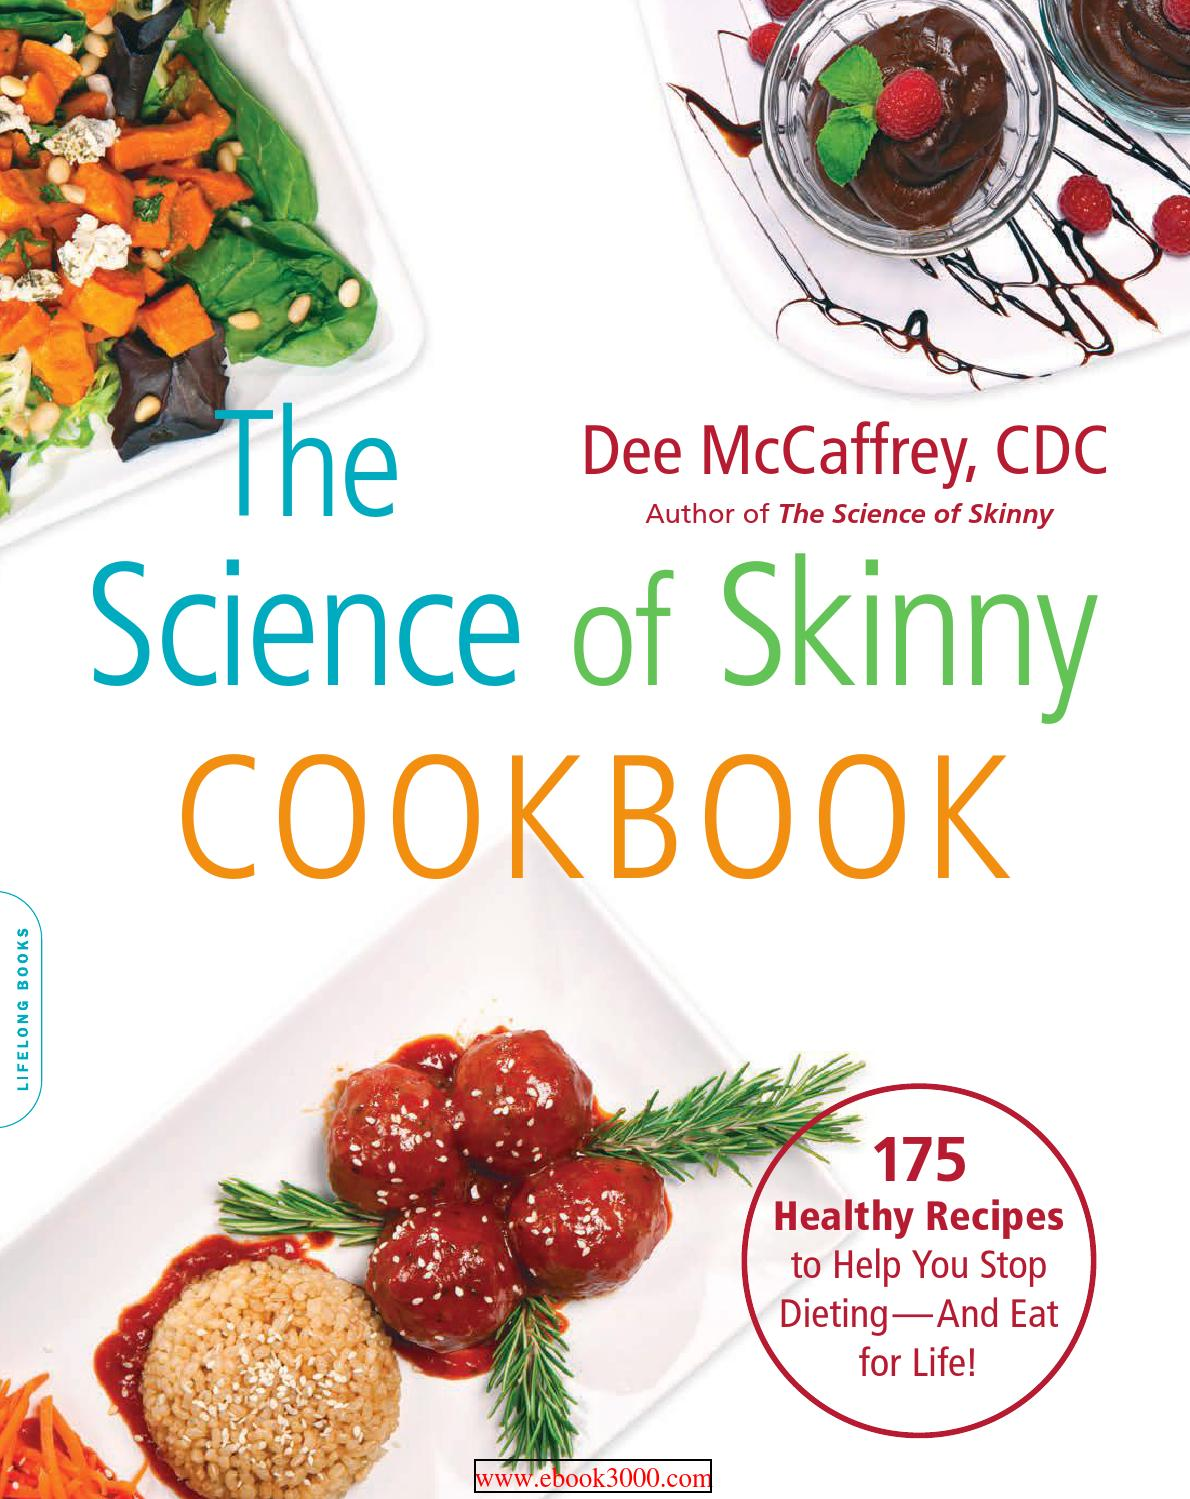 The Science Of Skinny Cookbook 175 Healthy Recipes To Help You Stop Dieting  And Eat For